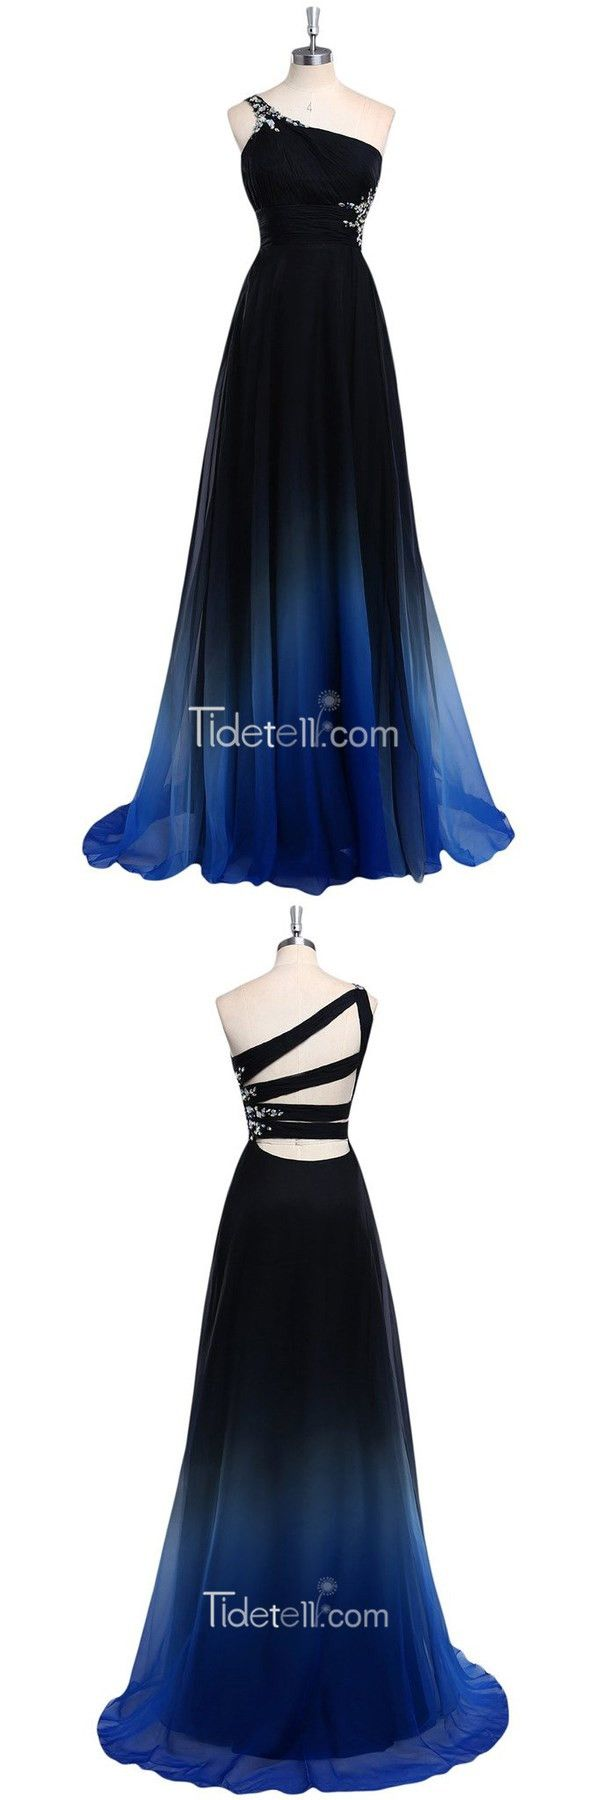 2016 long prom dresses, one-shoulder beaded prom dresses, blue ombre prom dress